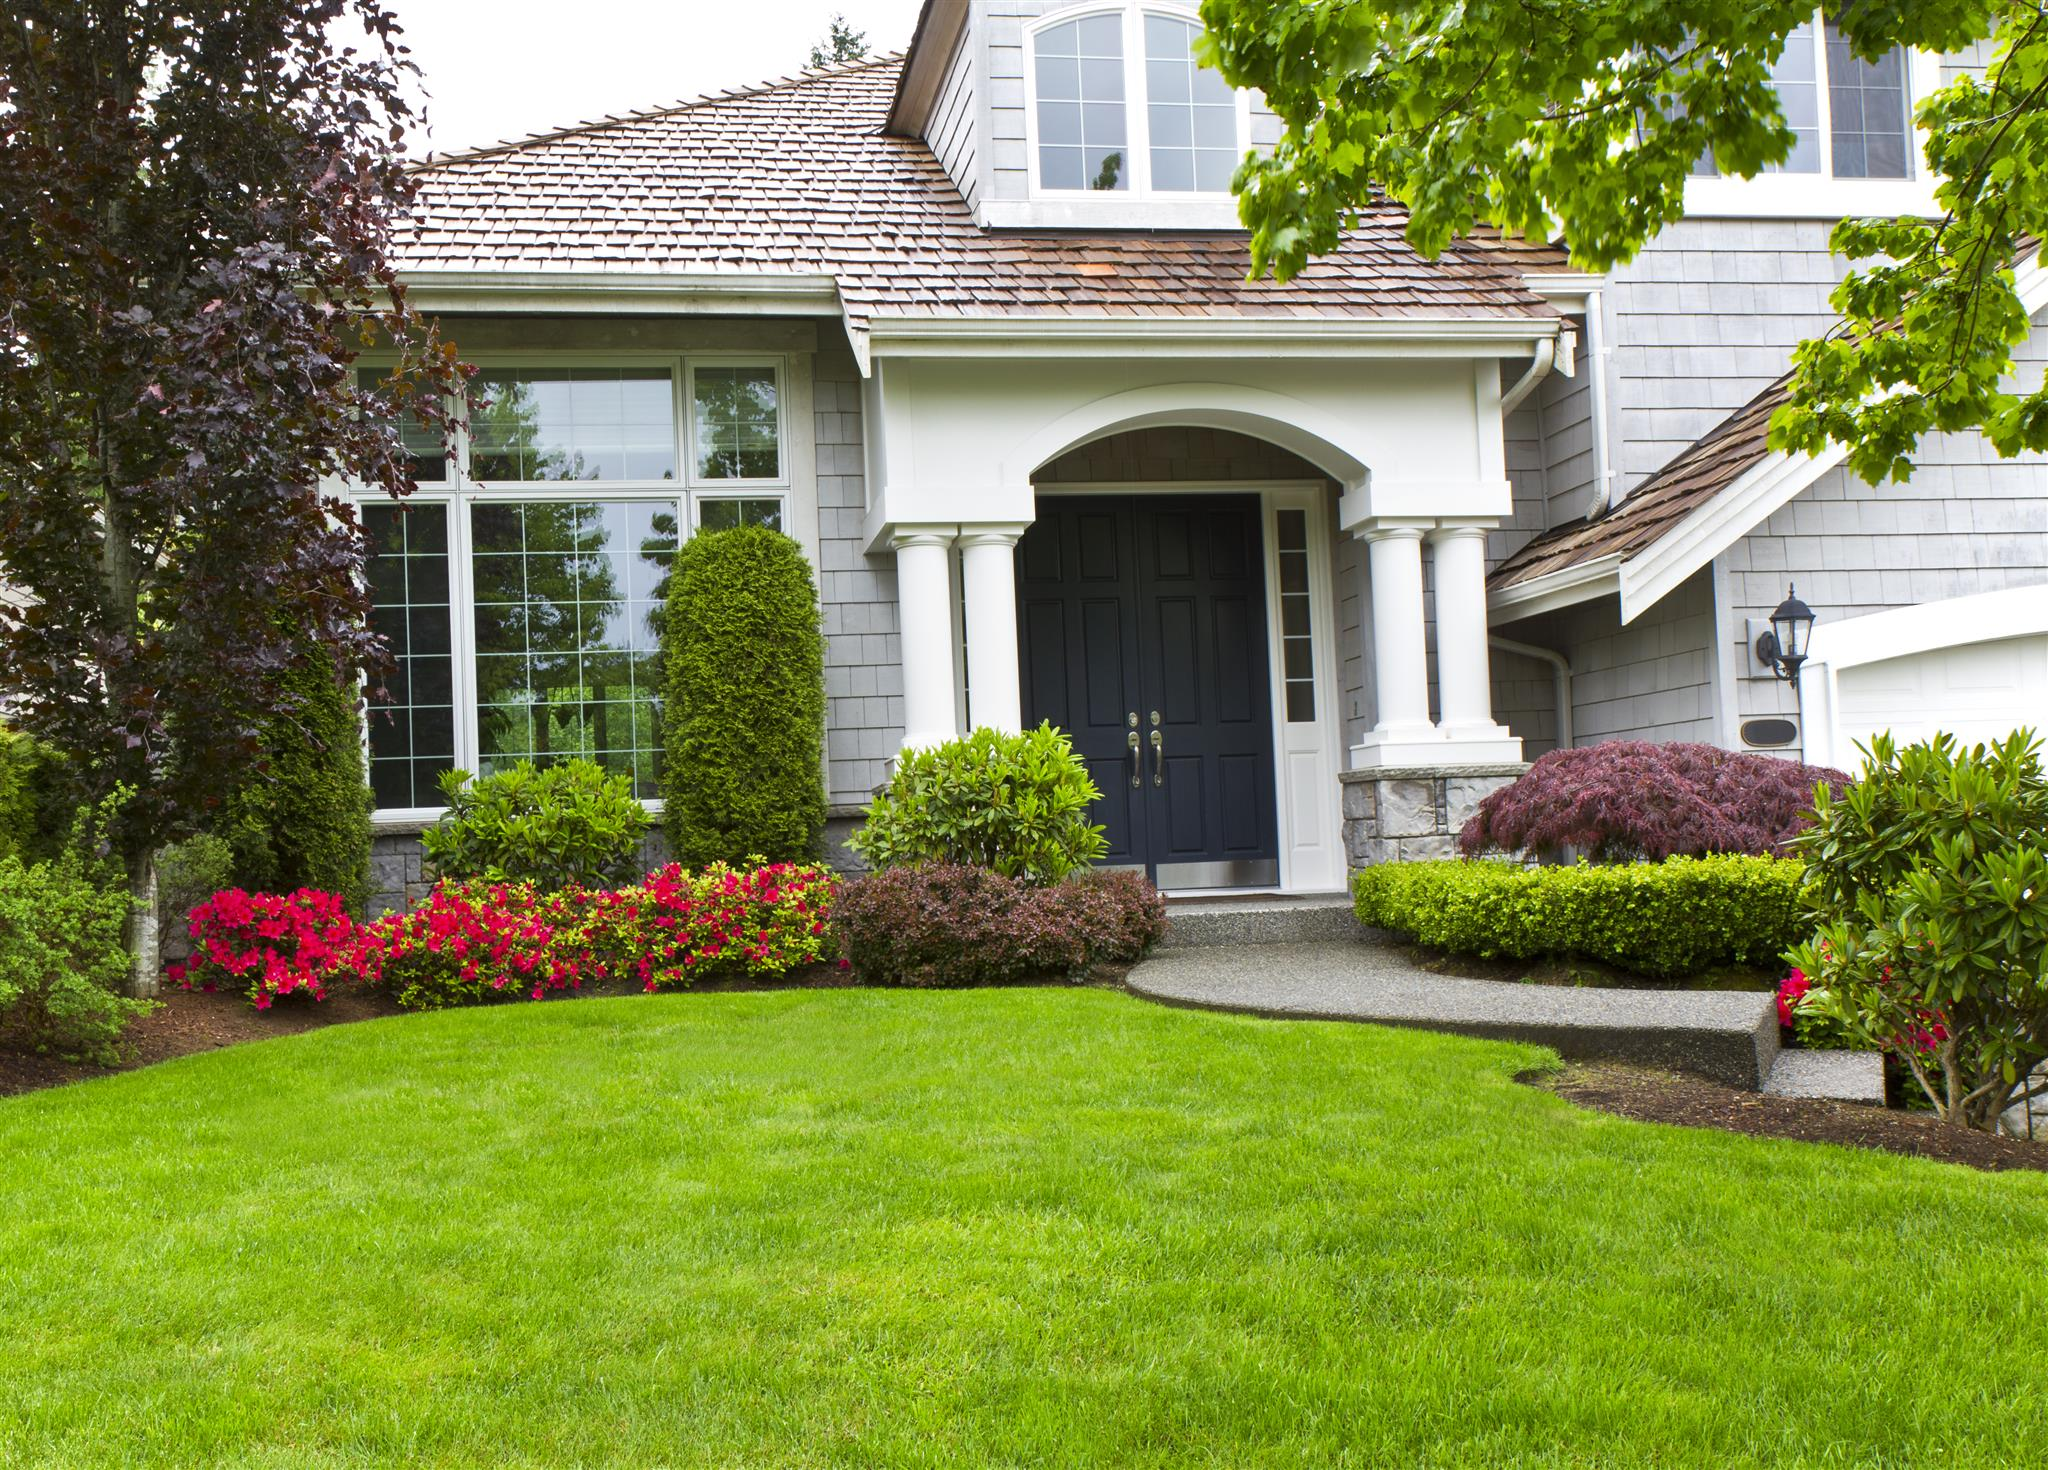 Top 10 Front Yard Eye Catching Landscaping Ideas For Homes